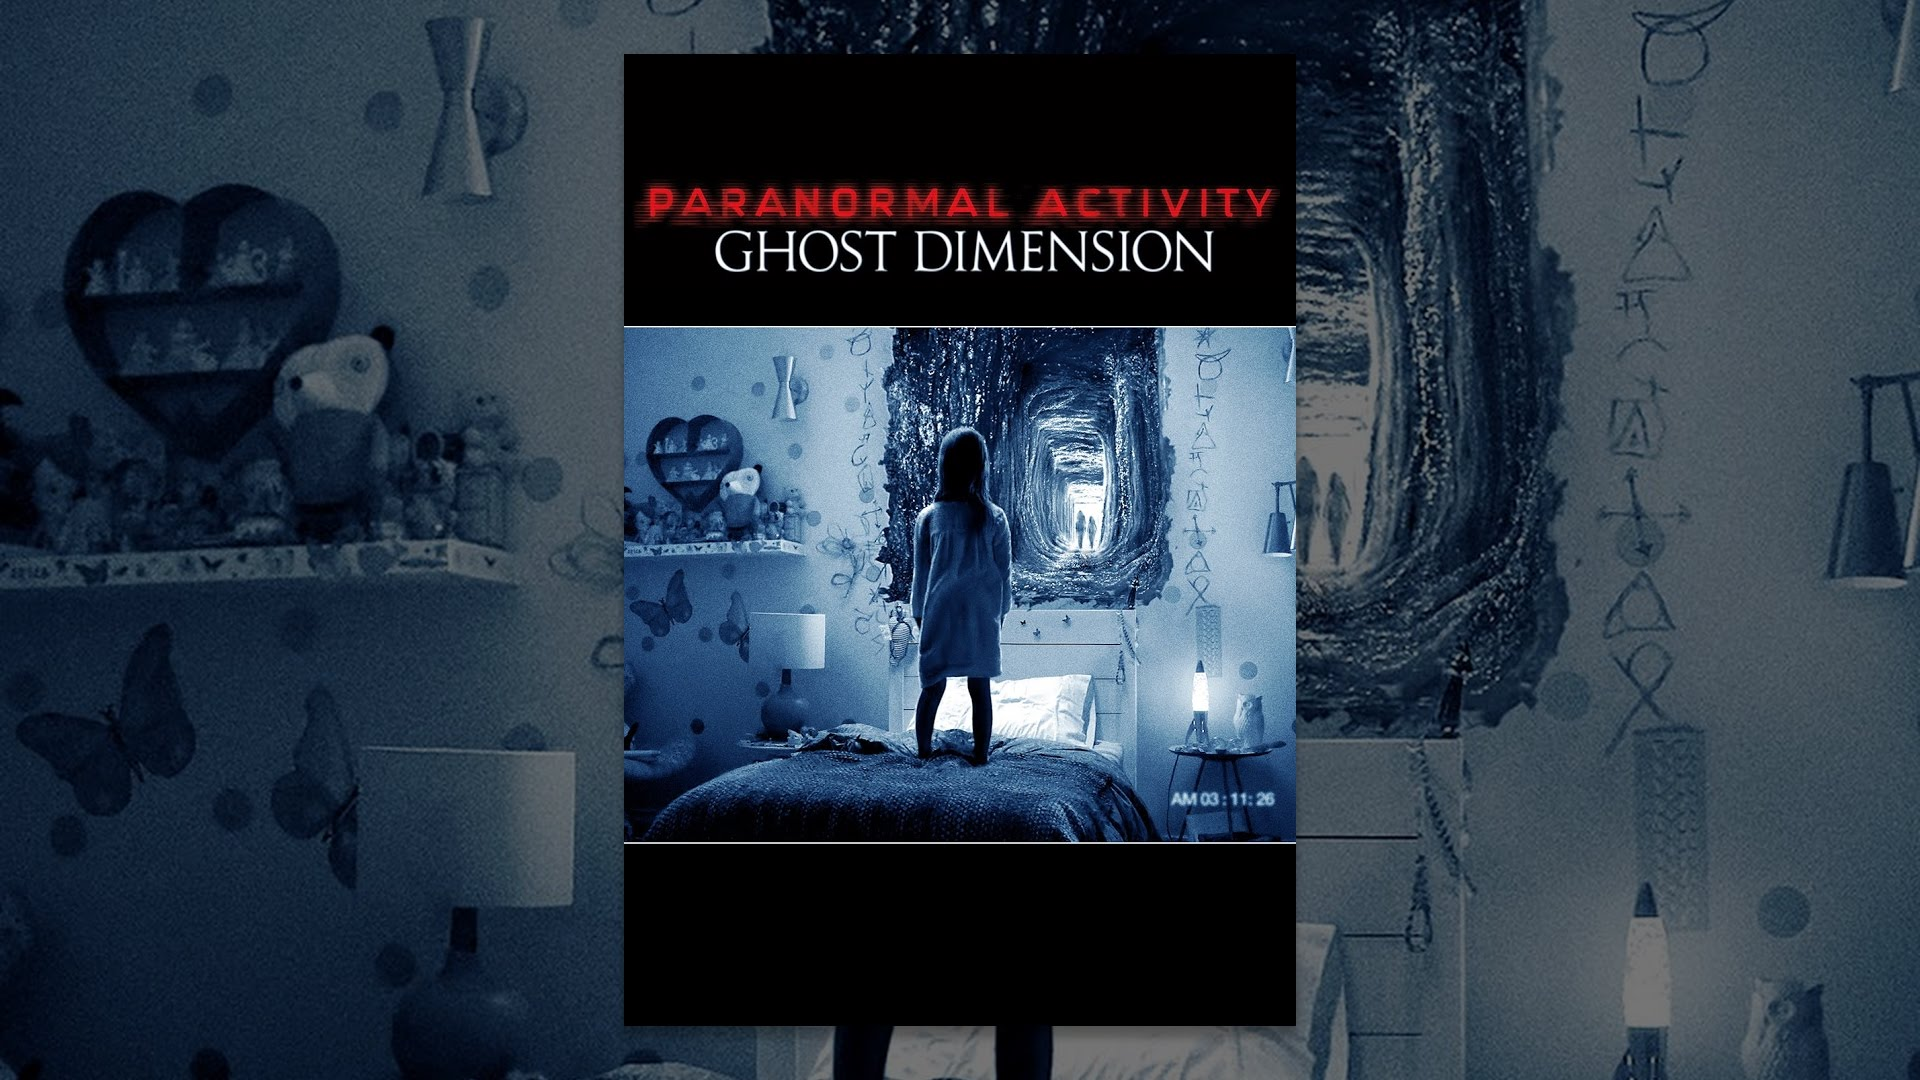 a discussion on ghosts and the paranormal But what is a ghost do you believe in ghosts the question is huge getting people to believe in ghosts automatically forces them to reject key bible verses.